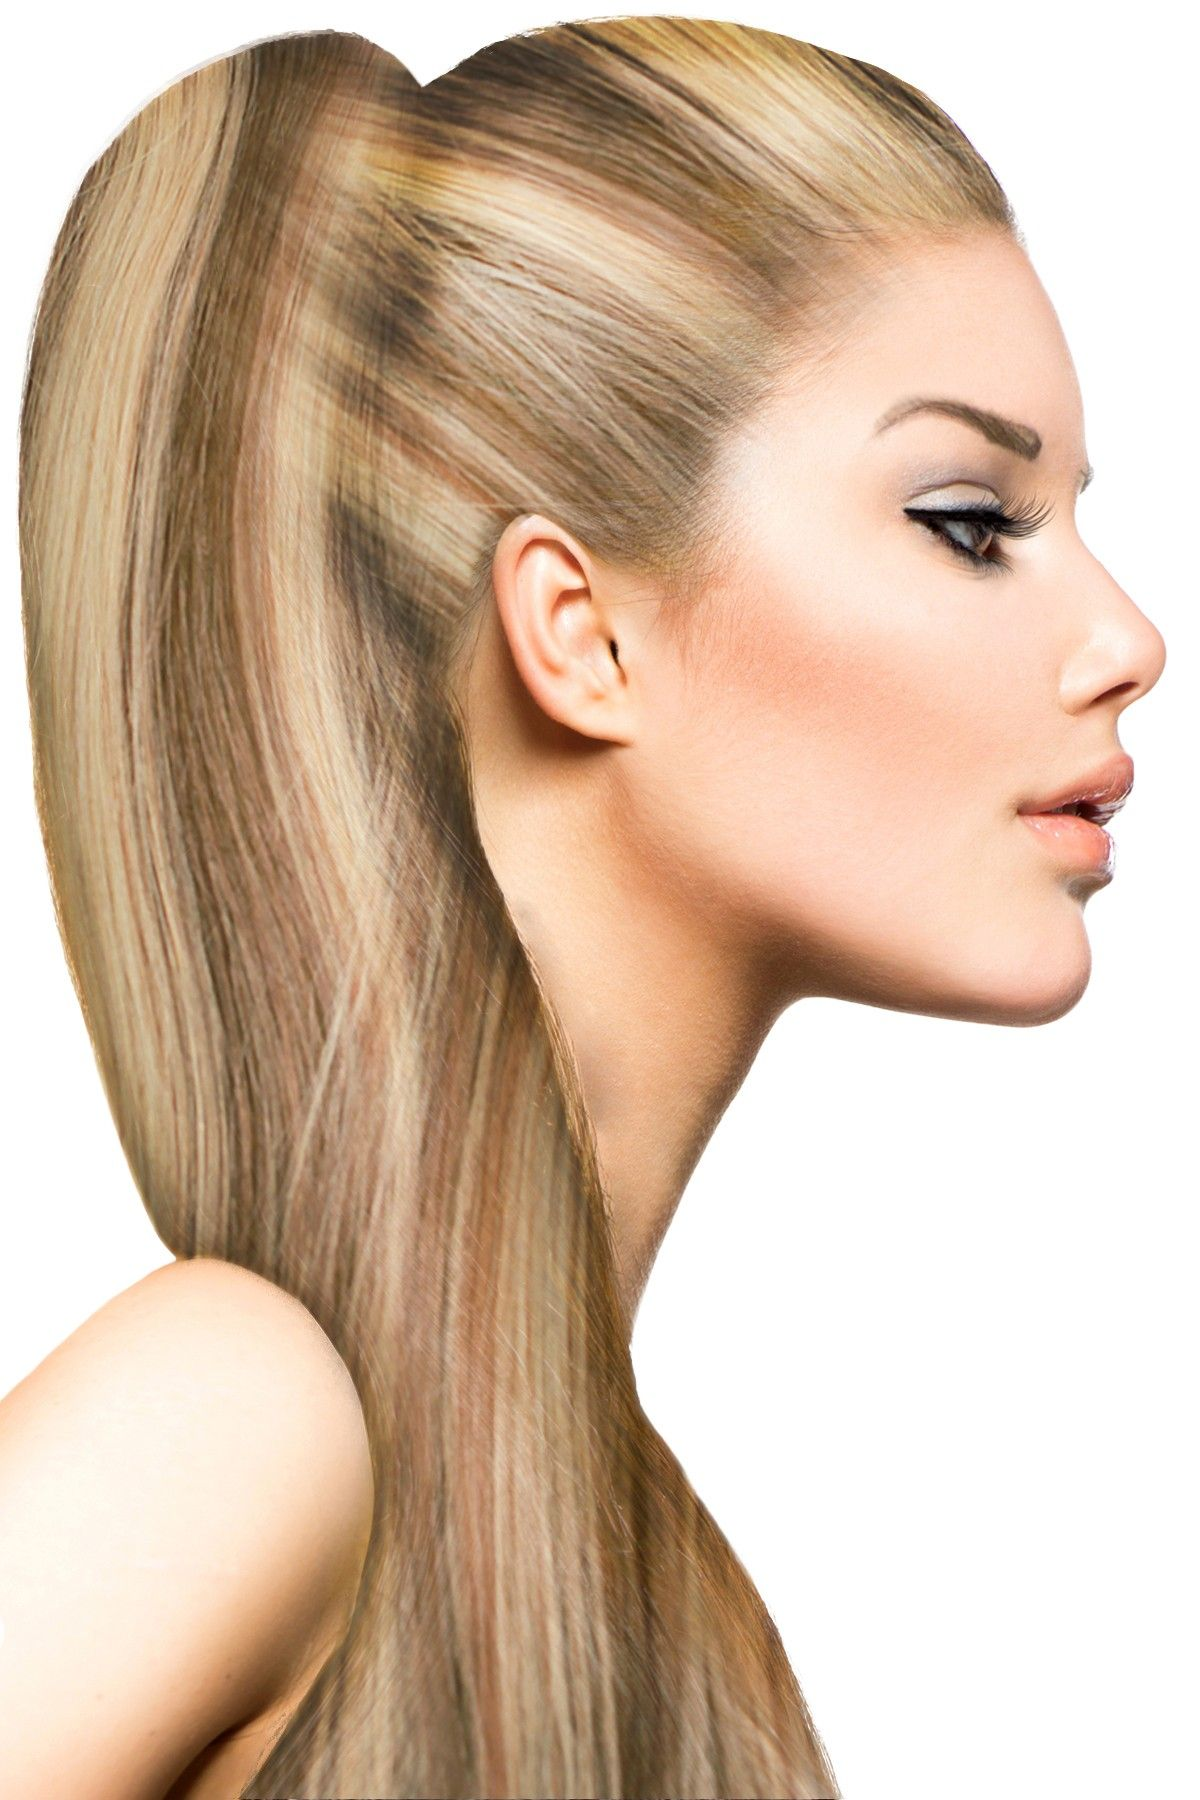 Celebrity Strands | 21 Clip-In Extensions 100% Remy Human Hair - #P8/24 Blonde and Light Blonde Highlights | HauteLook #humanhairextensions